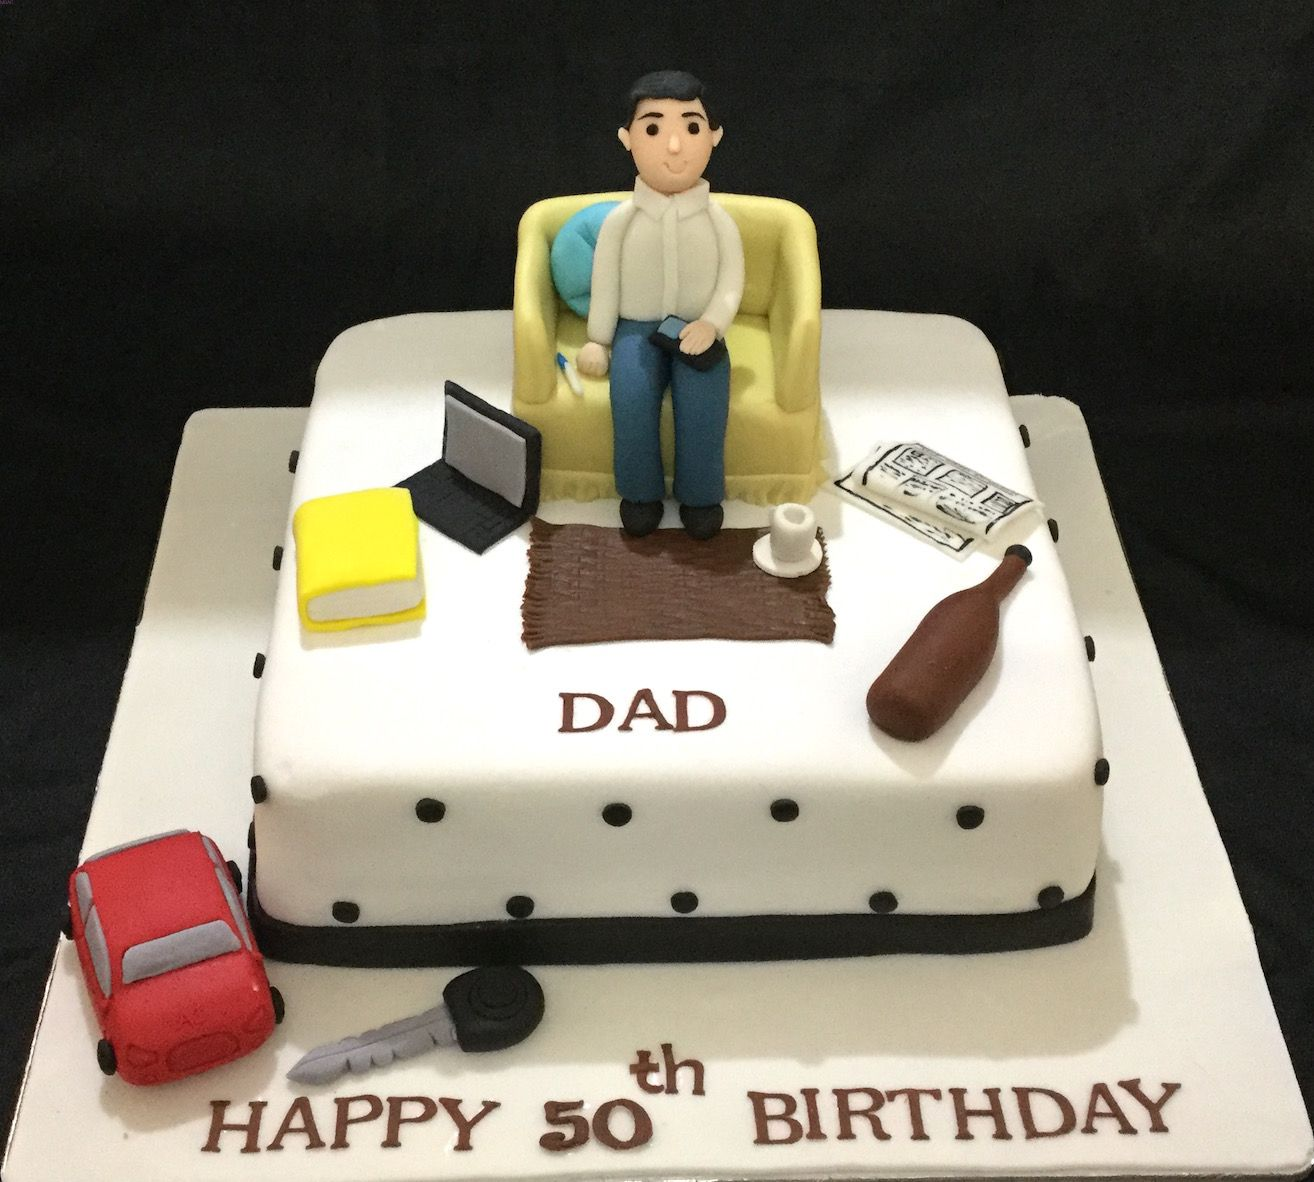 Surprising Birthday Cake For Husband And Father Legit Ng Funny Birthday Cards Online Bapapcheapnameinfo